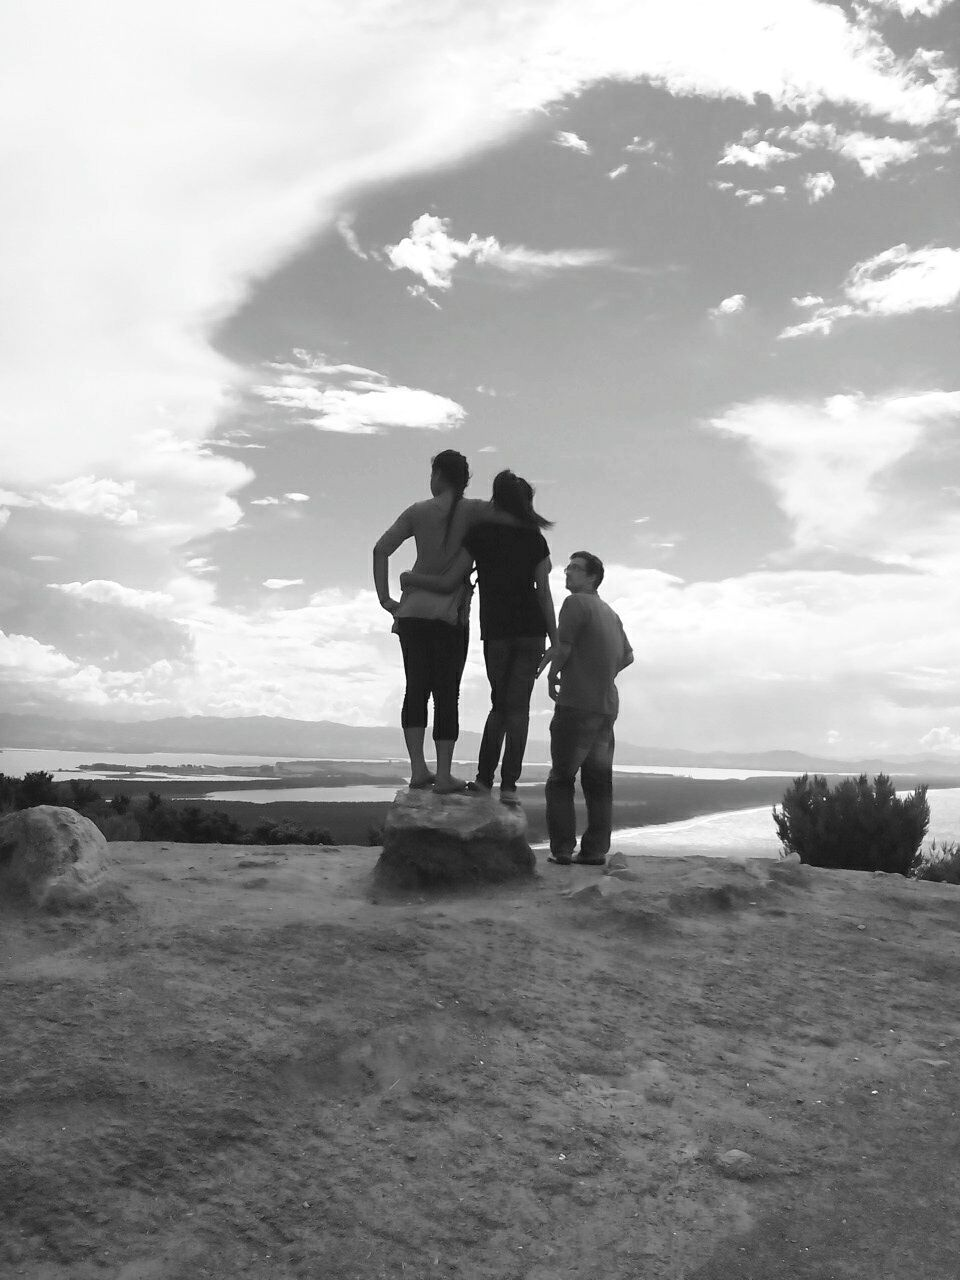 sky, cloud - sky, togetherness, full length, real people, two people, men, nature, beauty in nature, landscape, day, standing, lifestyles, outdoors, friendship, people